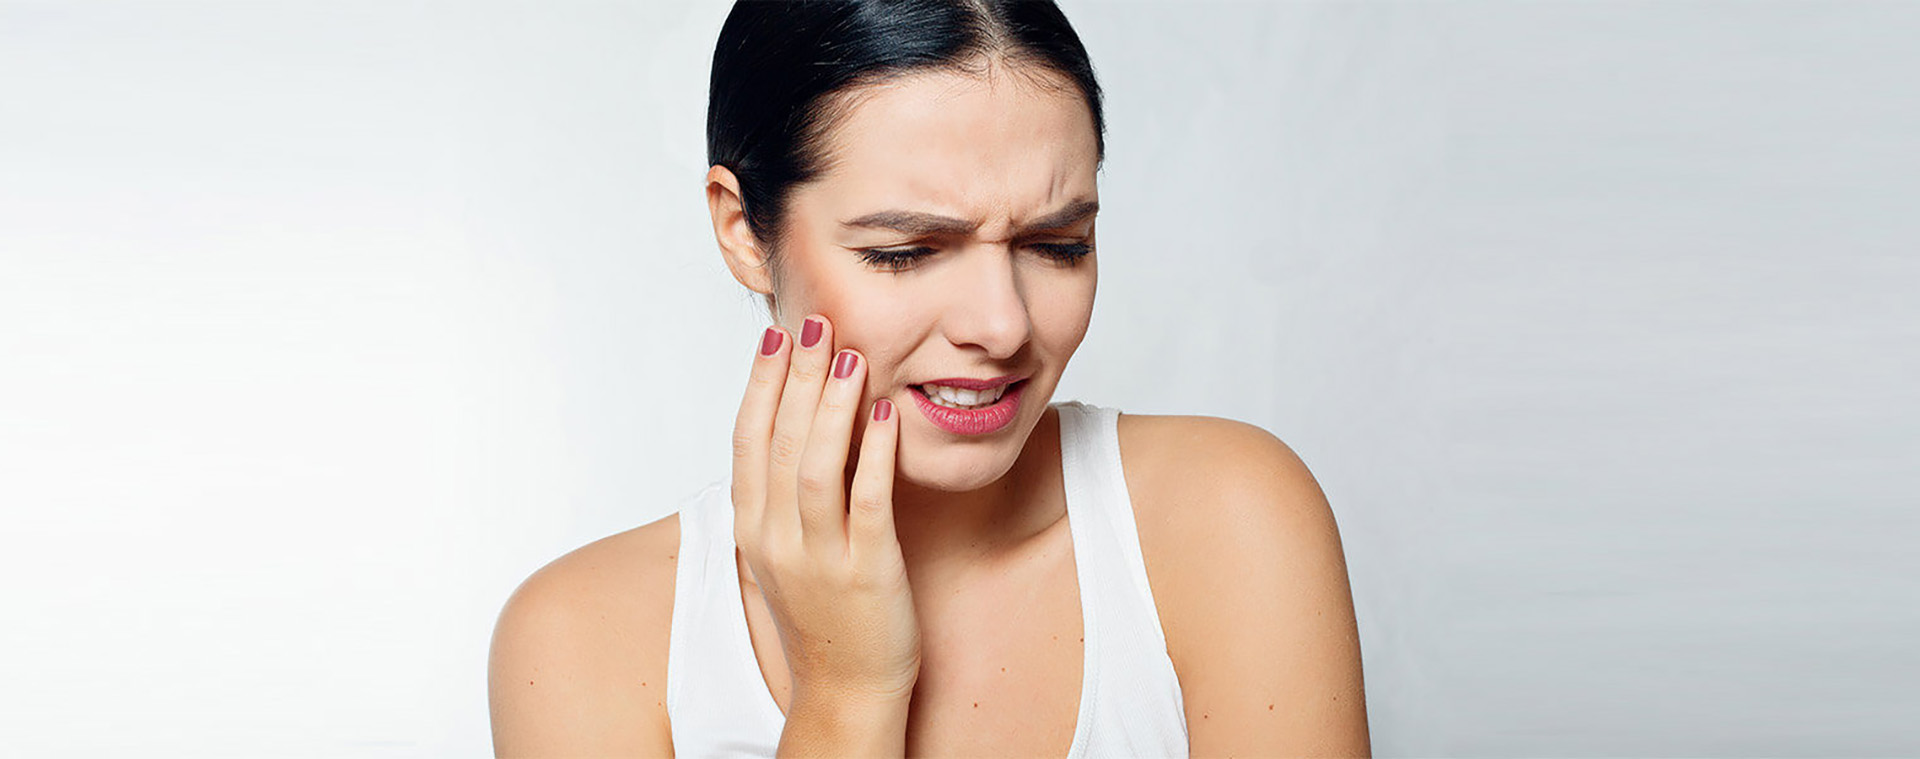 Woman with tooth pain. Emergency dentistry Marietta, GA.